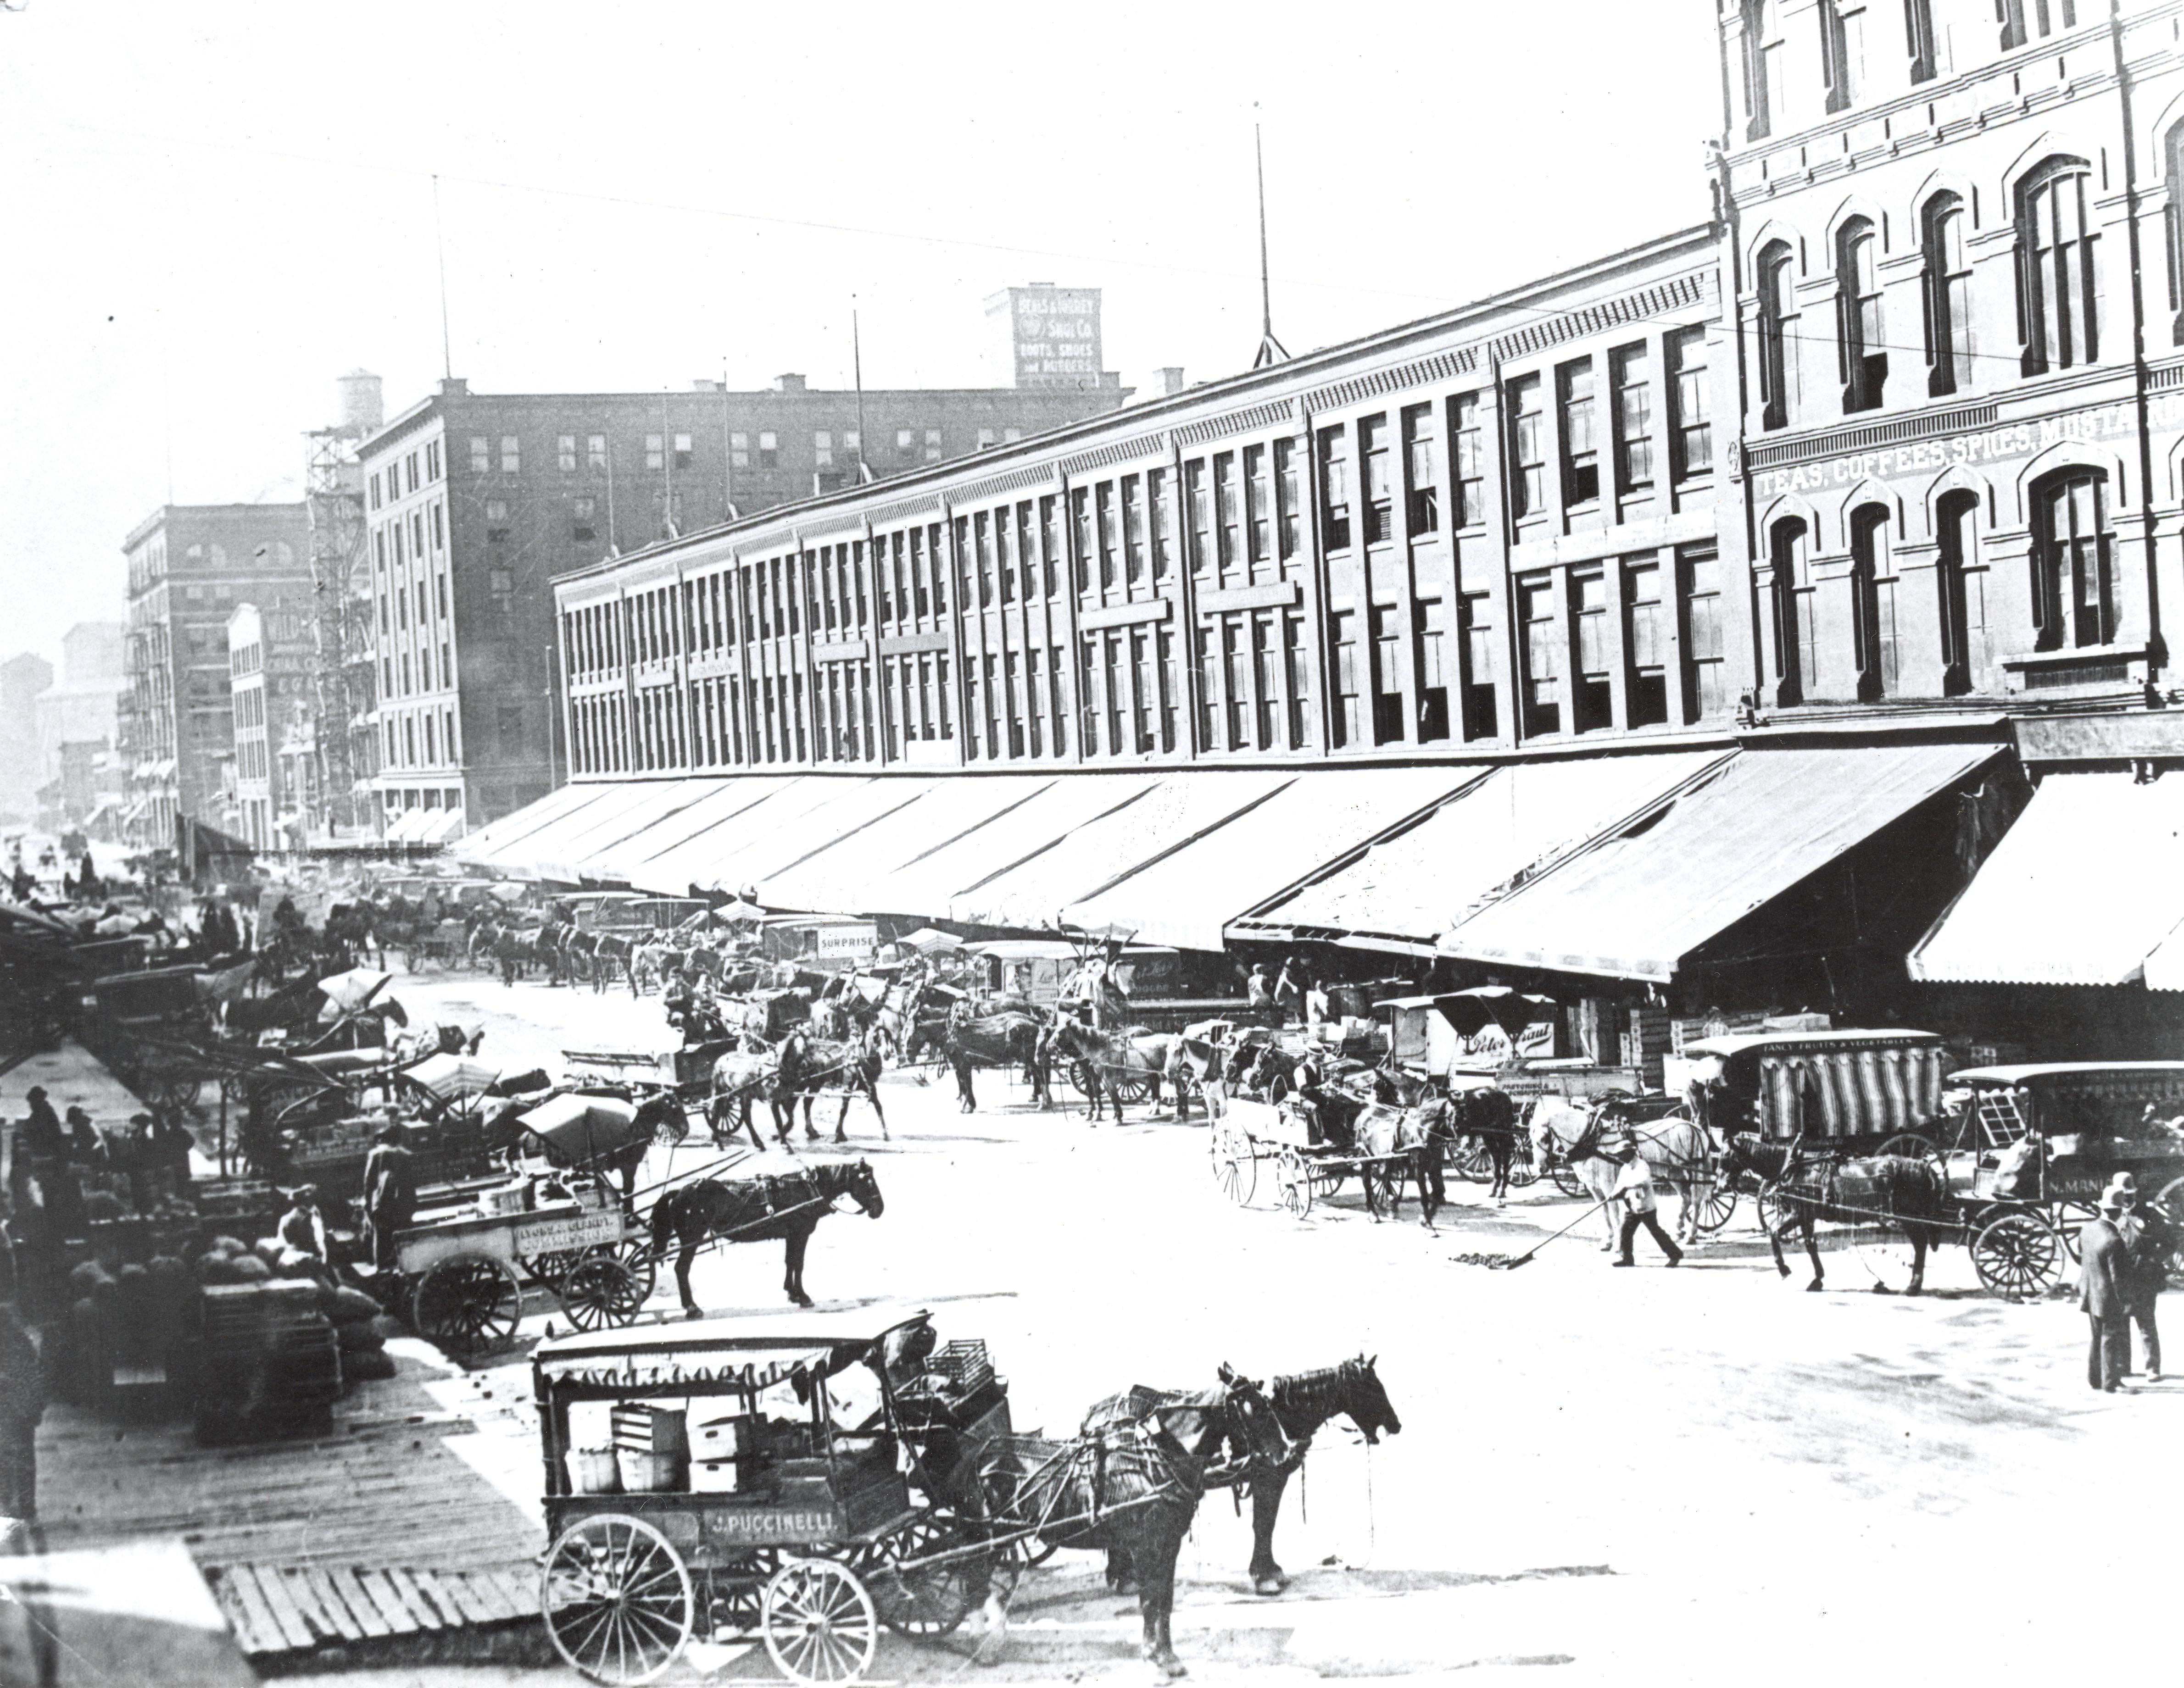 <table class=&quot;lightbox&quot;><tr><td colspan=2 class=&quot;lightbox-title&quot;>Commission Row in Milwaukee</td></tr><tr><td colspan=2 class=&quot;lightbox-caption&quot;>Horse-drawn carts full of produce line Commission Row on Broadway Street. </td></tr><tr><td colspan=2 class=&quot;lightbox-spacer&quot;></td></tr><tr class=&quot;lightbox-detail&quot;><td class=&quot;cell-title&quot;>Source: </td><td class=&quot;cell-value&quot;>From the Historic Photo Collection of the Milwaukee Public Library. Reprinted with permission. <br /><a href=&quot;http://content.mpl.org/cdm/singleitem/collection/HstoricPho/id/1185/rec/1&quot; target=&quot;_blank&quot;>Milwaukee Public Library</a></td></tr><tr class=&quot;filler-row&quot;><td colspan=2>&nbsp;</td></tr></table>